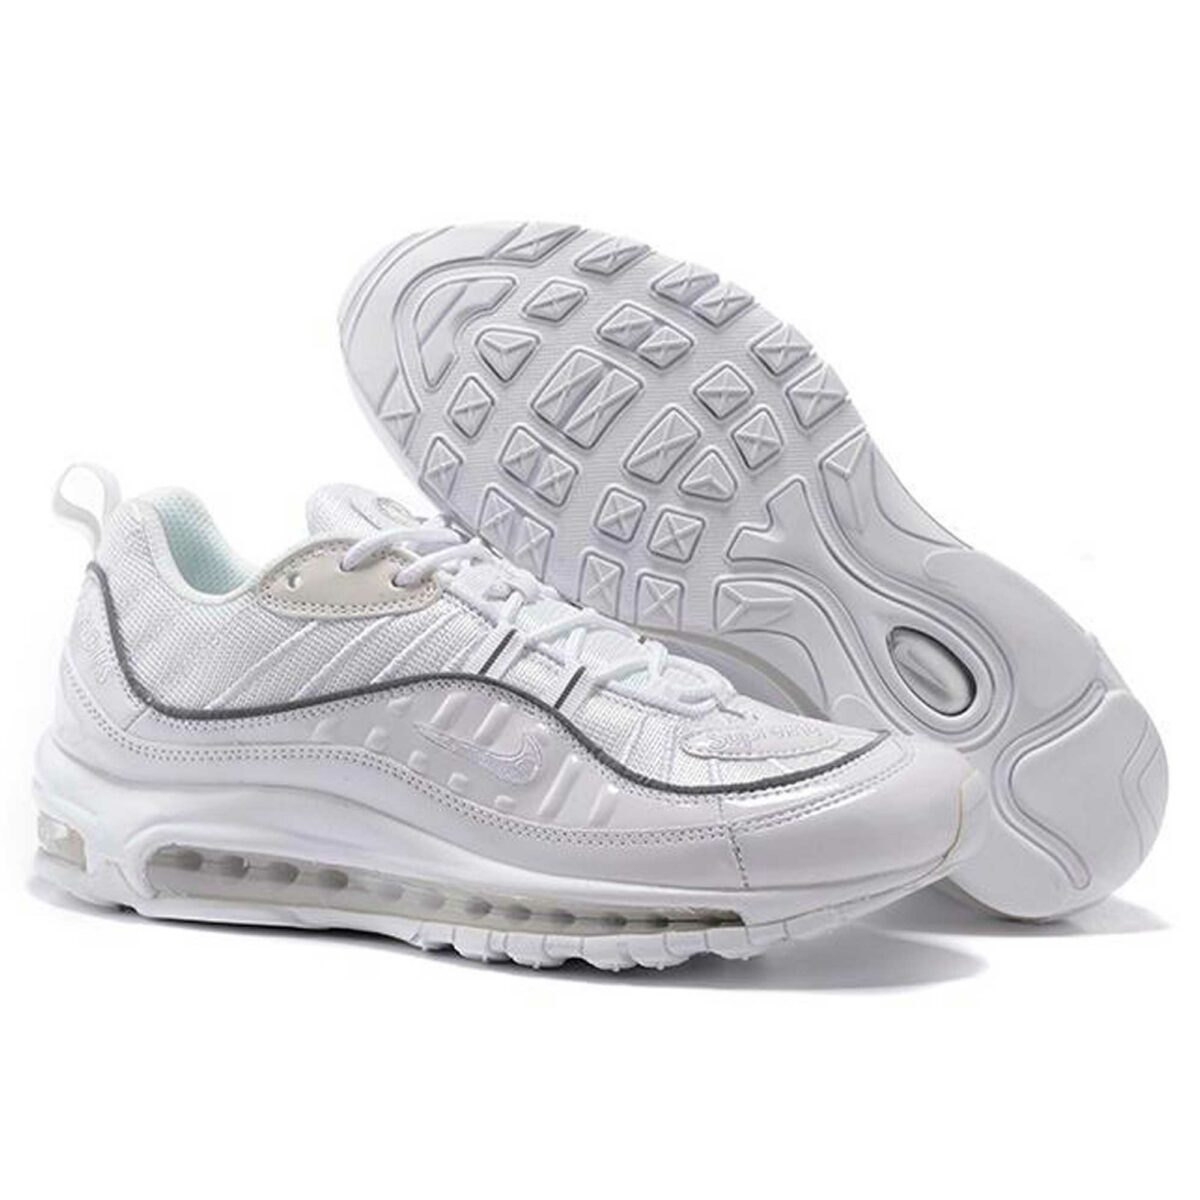 nike air max x supreme 98 all white 844694_002 купить